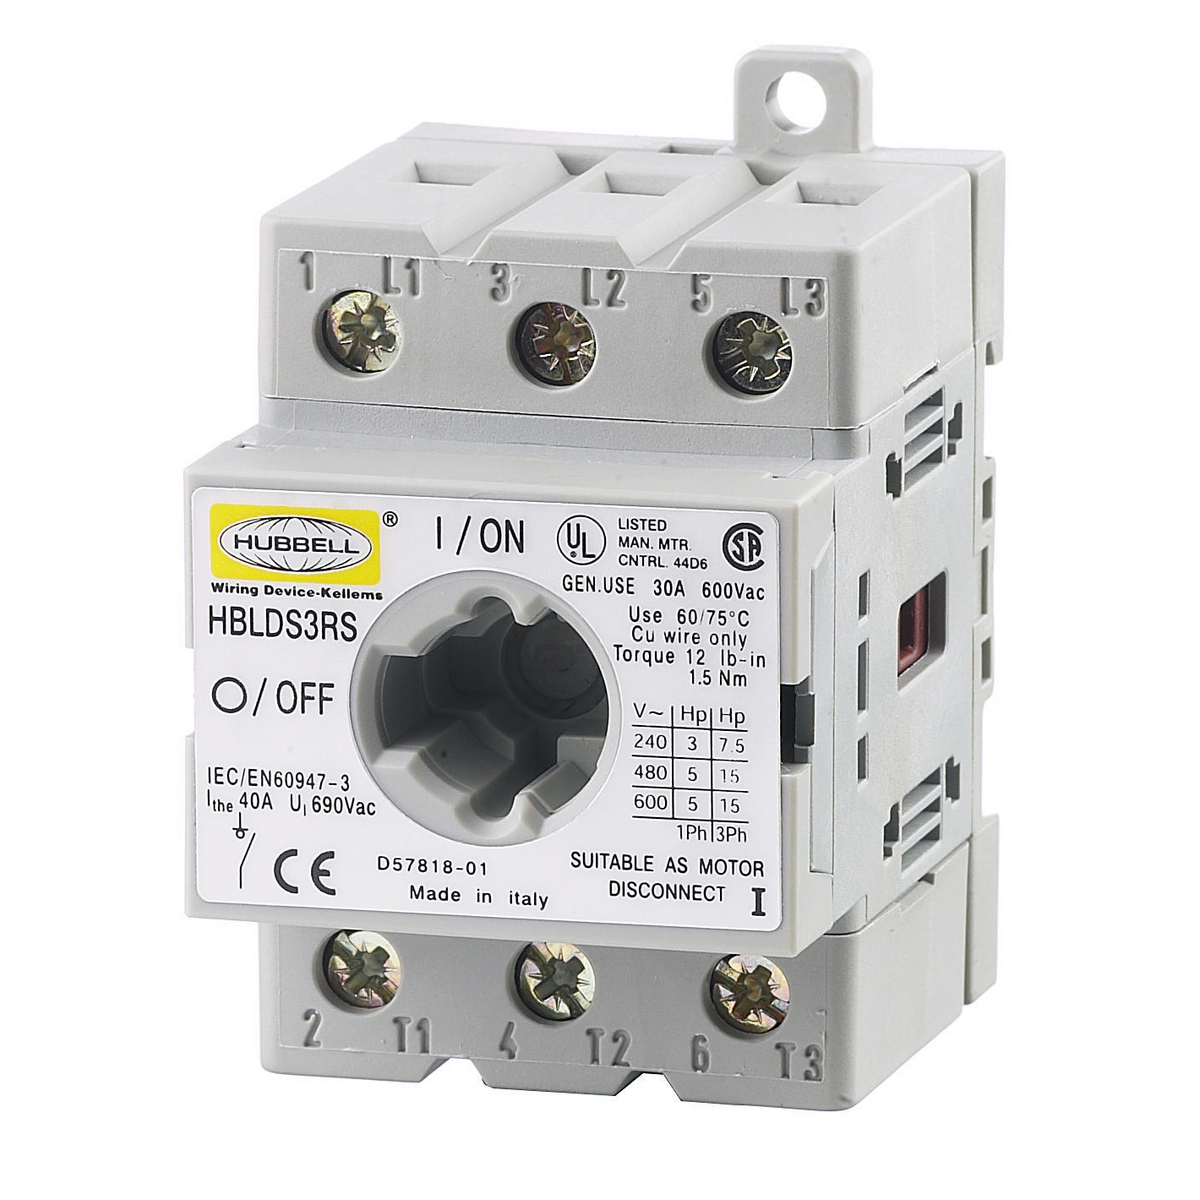 hubbell wiring device kellems distributors wiring solutions rh rausco com Hubbell Premise Wiring hubbell wiring devices distributors